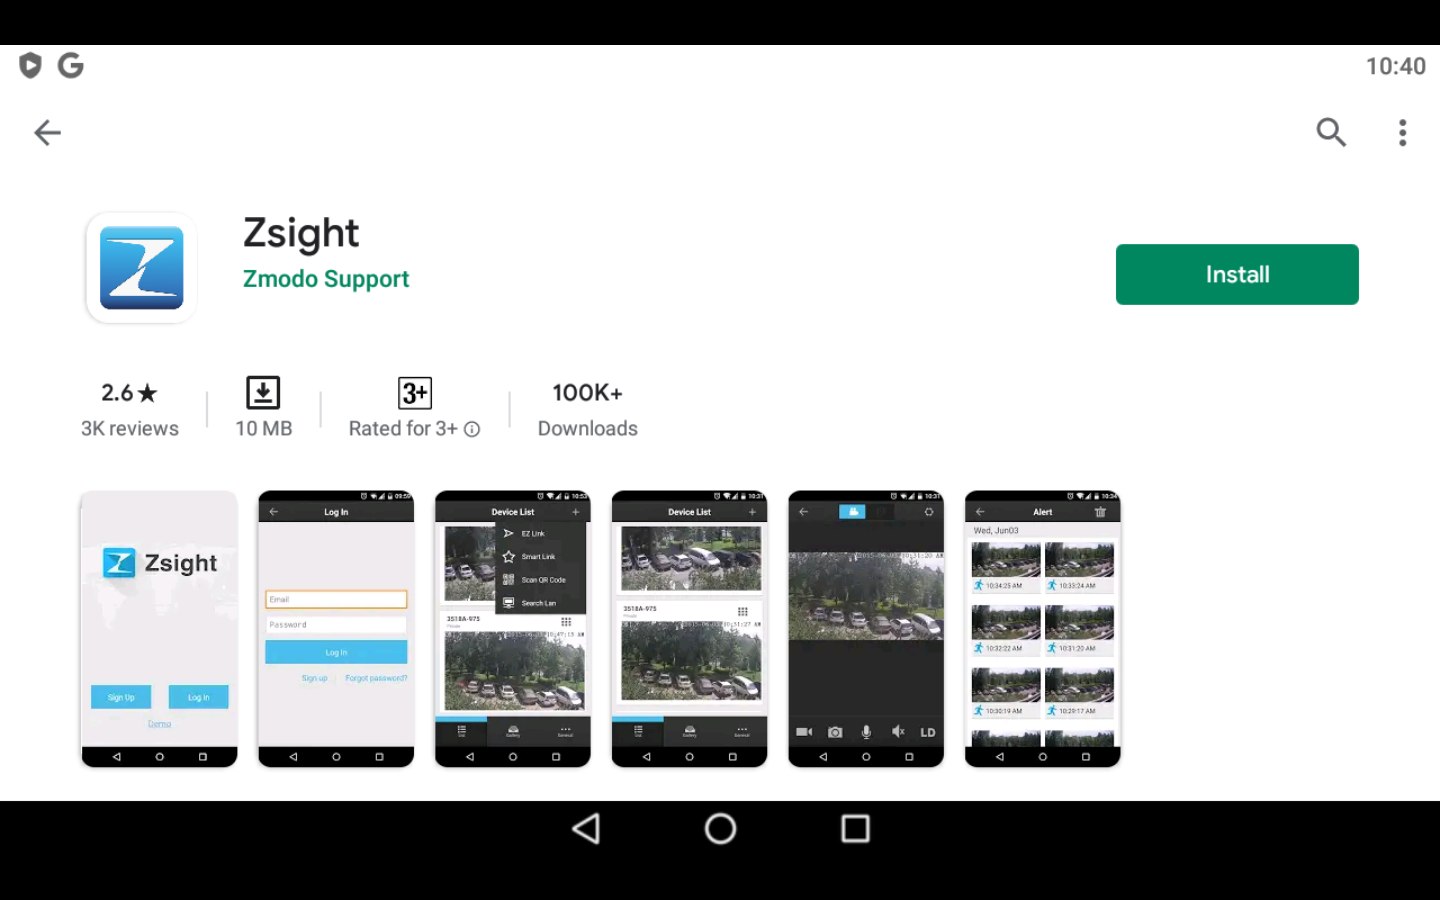 Zsight app on PC